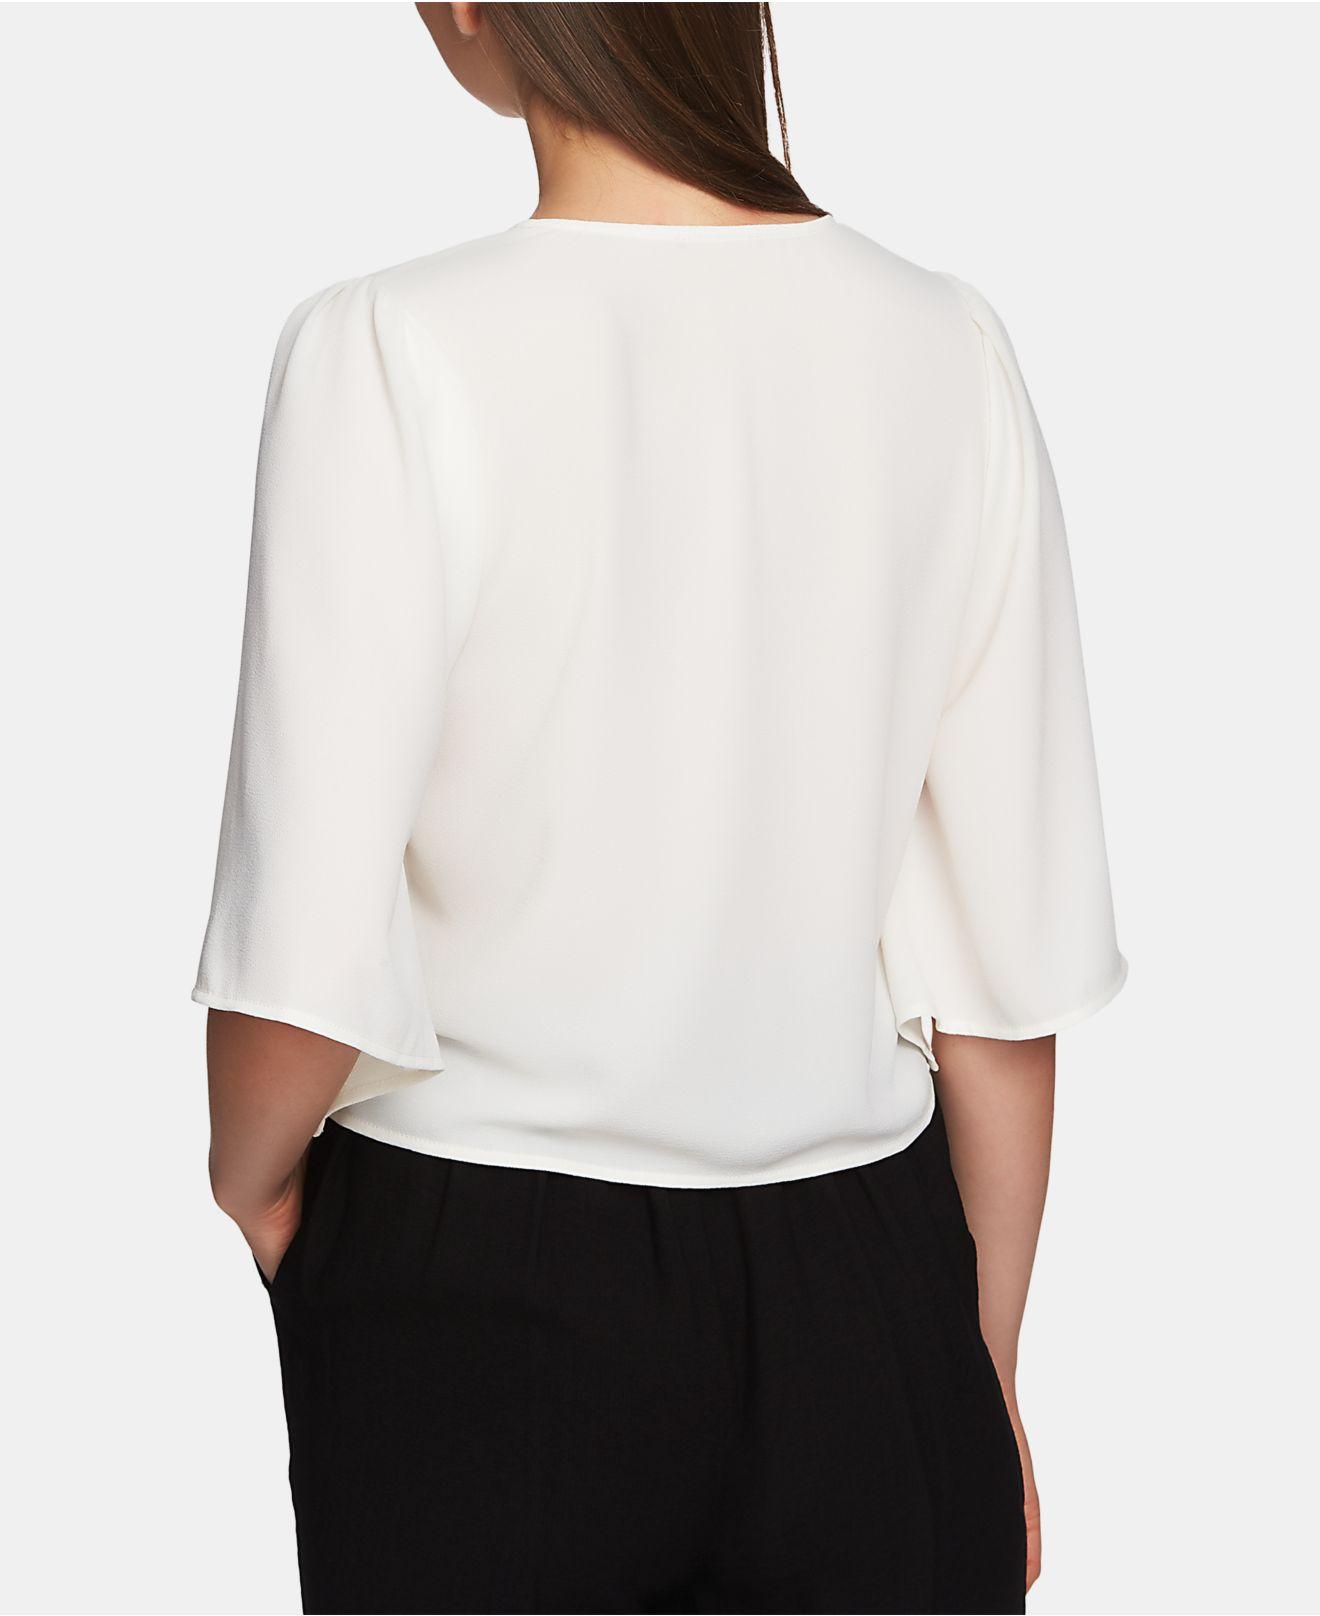 31f708bdf6fbf Lyst - 1.STATE Flounce-sleeve Tie-front Top in White